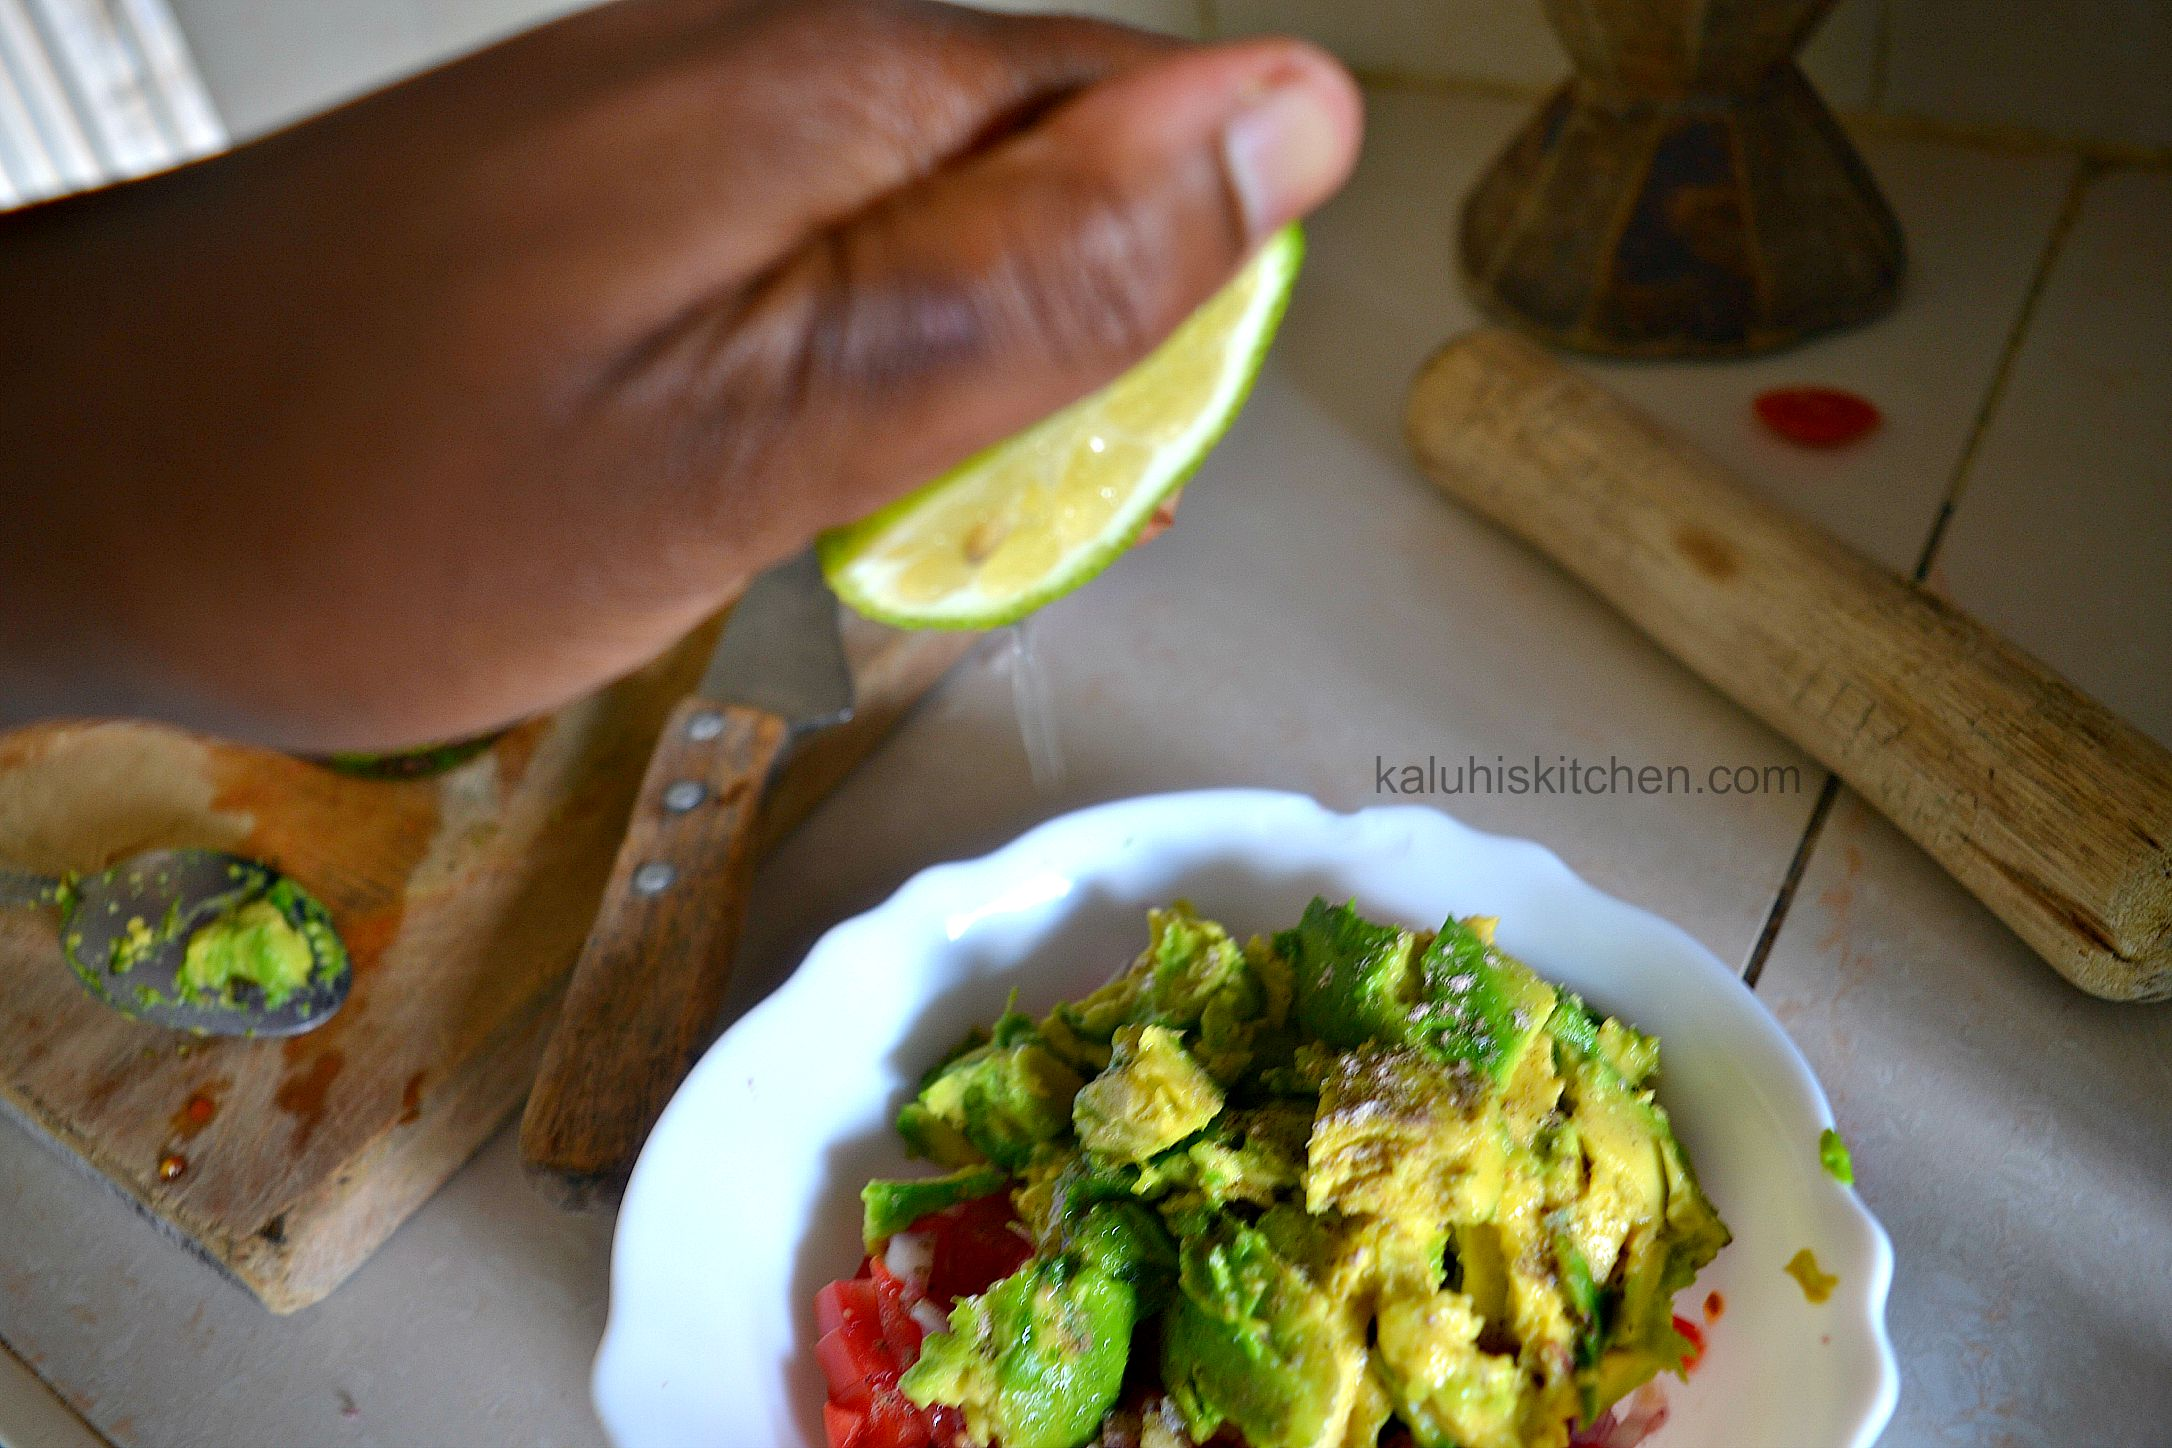 adding lime to the guacamole adds some acidity to the guacamole and some juiciness too_kaluhiskitchen.com